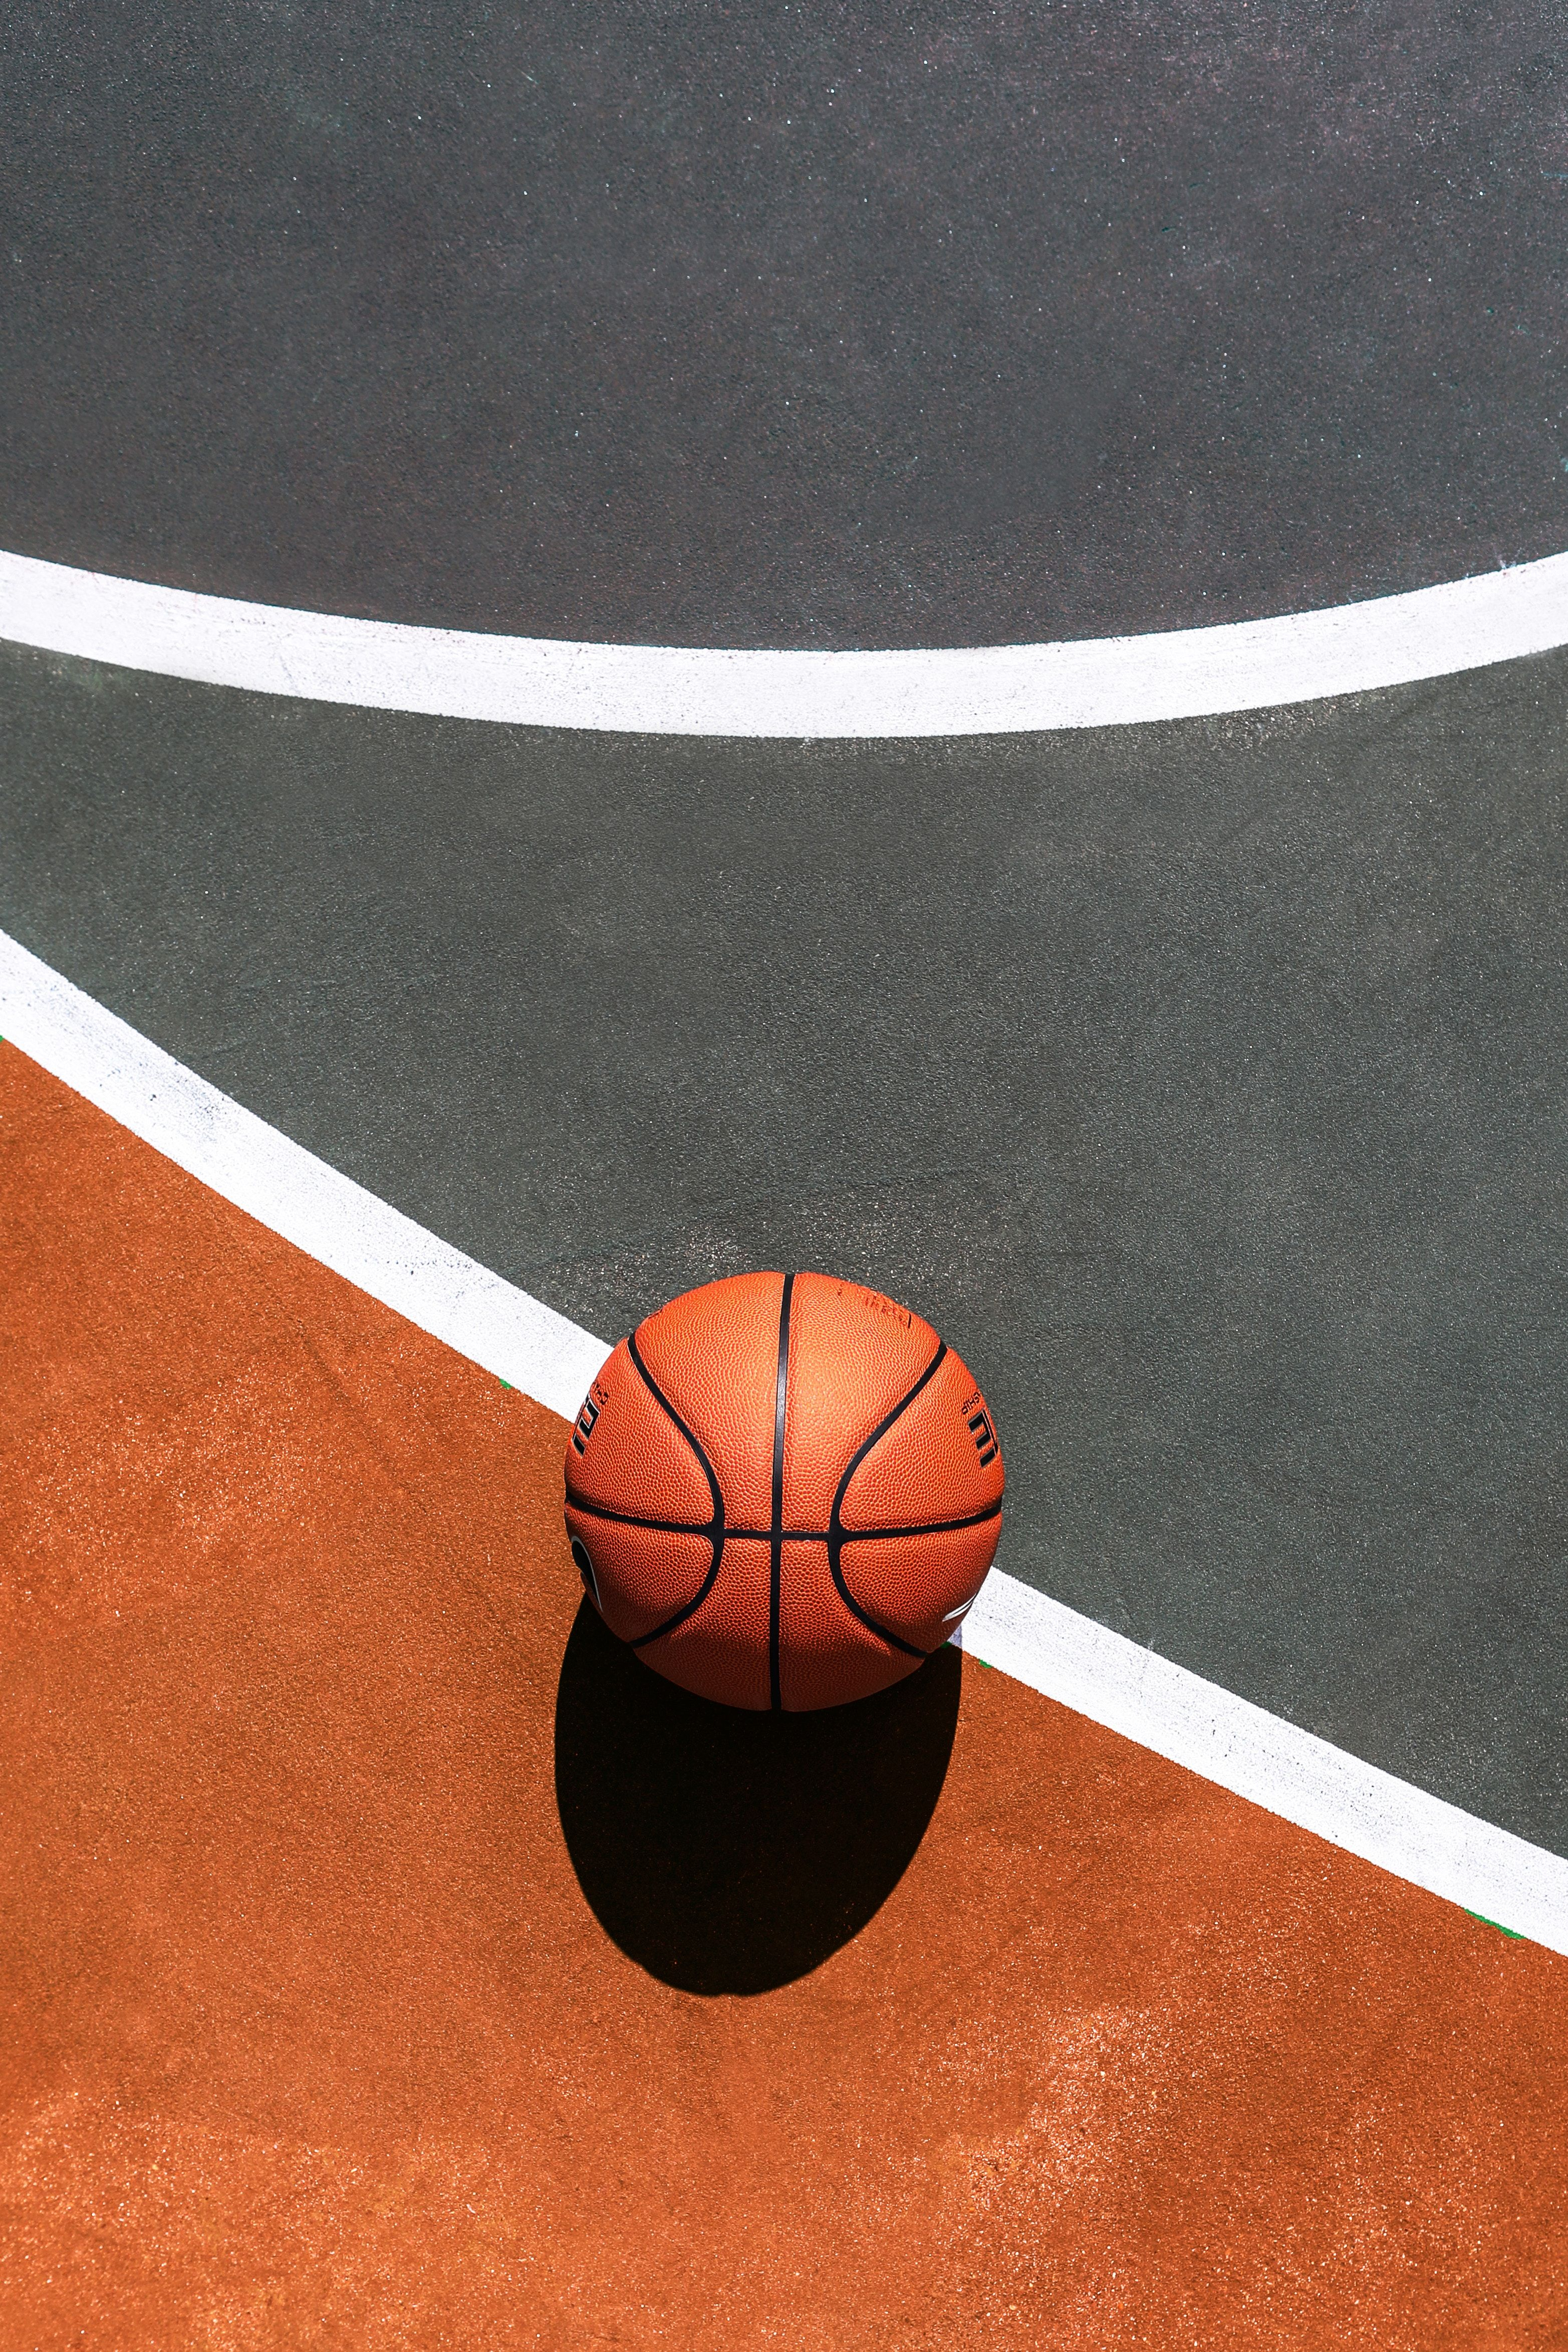 ac2ef8613342 Milestones of College Basketball. Basketball is a favorite pastime of kids  and adults alike.